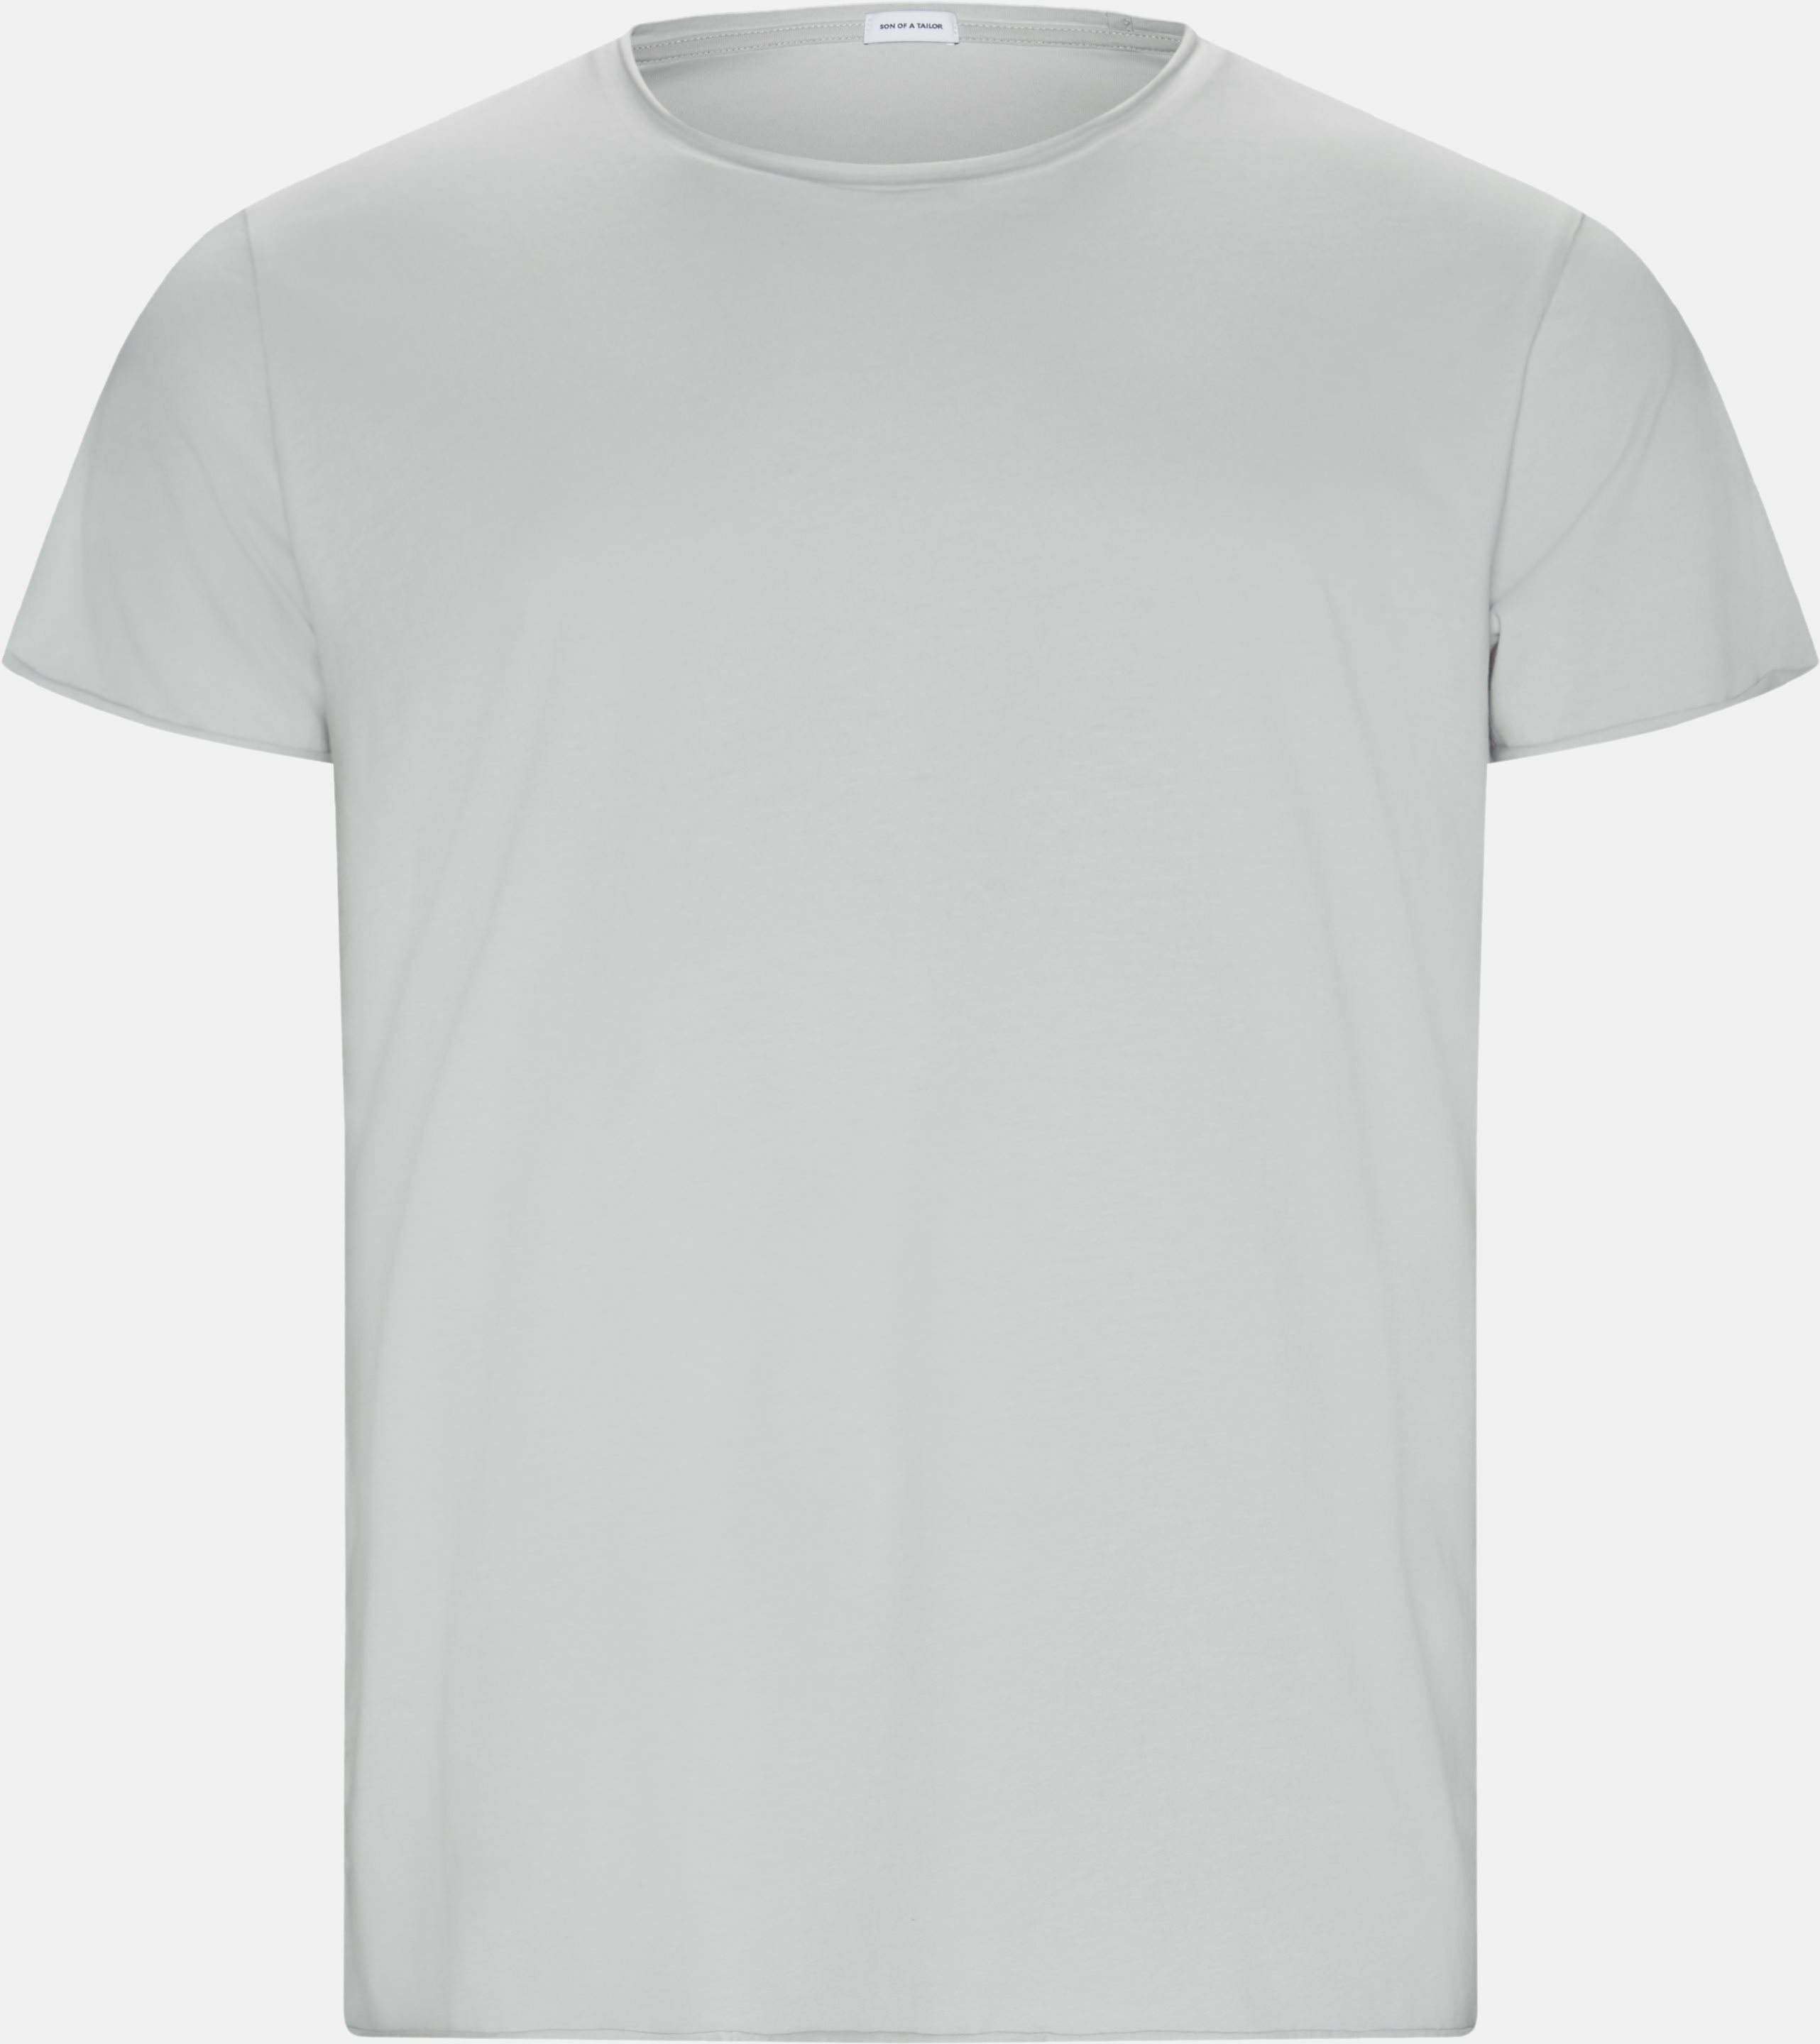 Raw Edge Tee - T-shirts - Regular - Grå